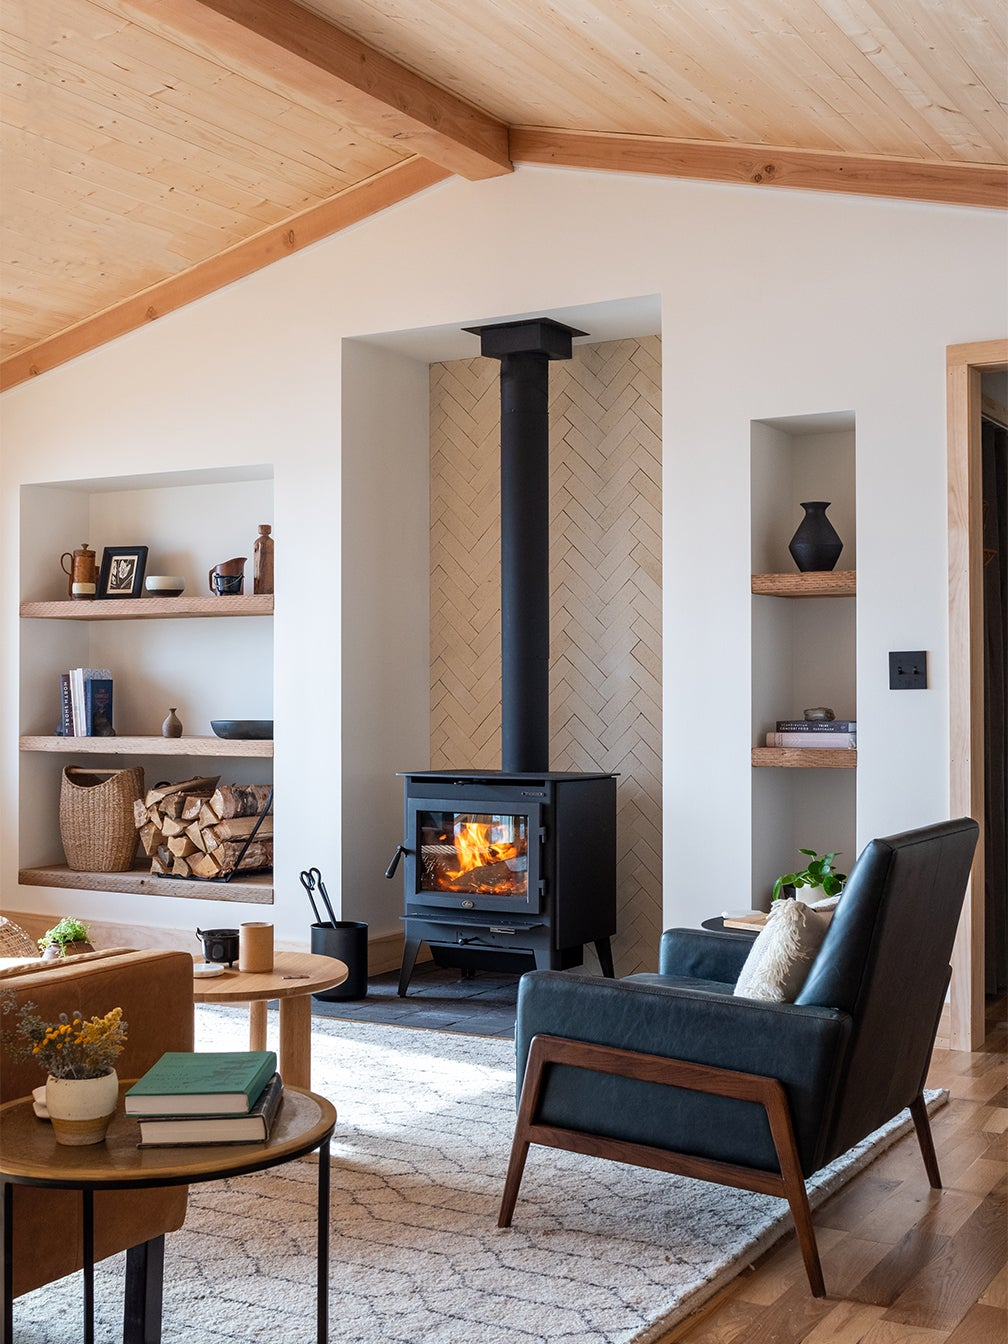 wood-burning stove in airy living room